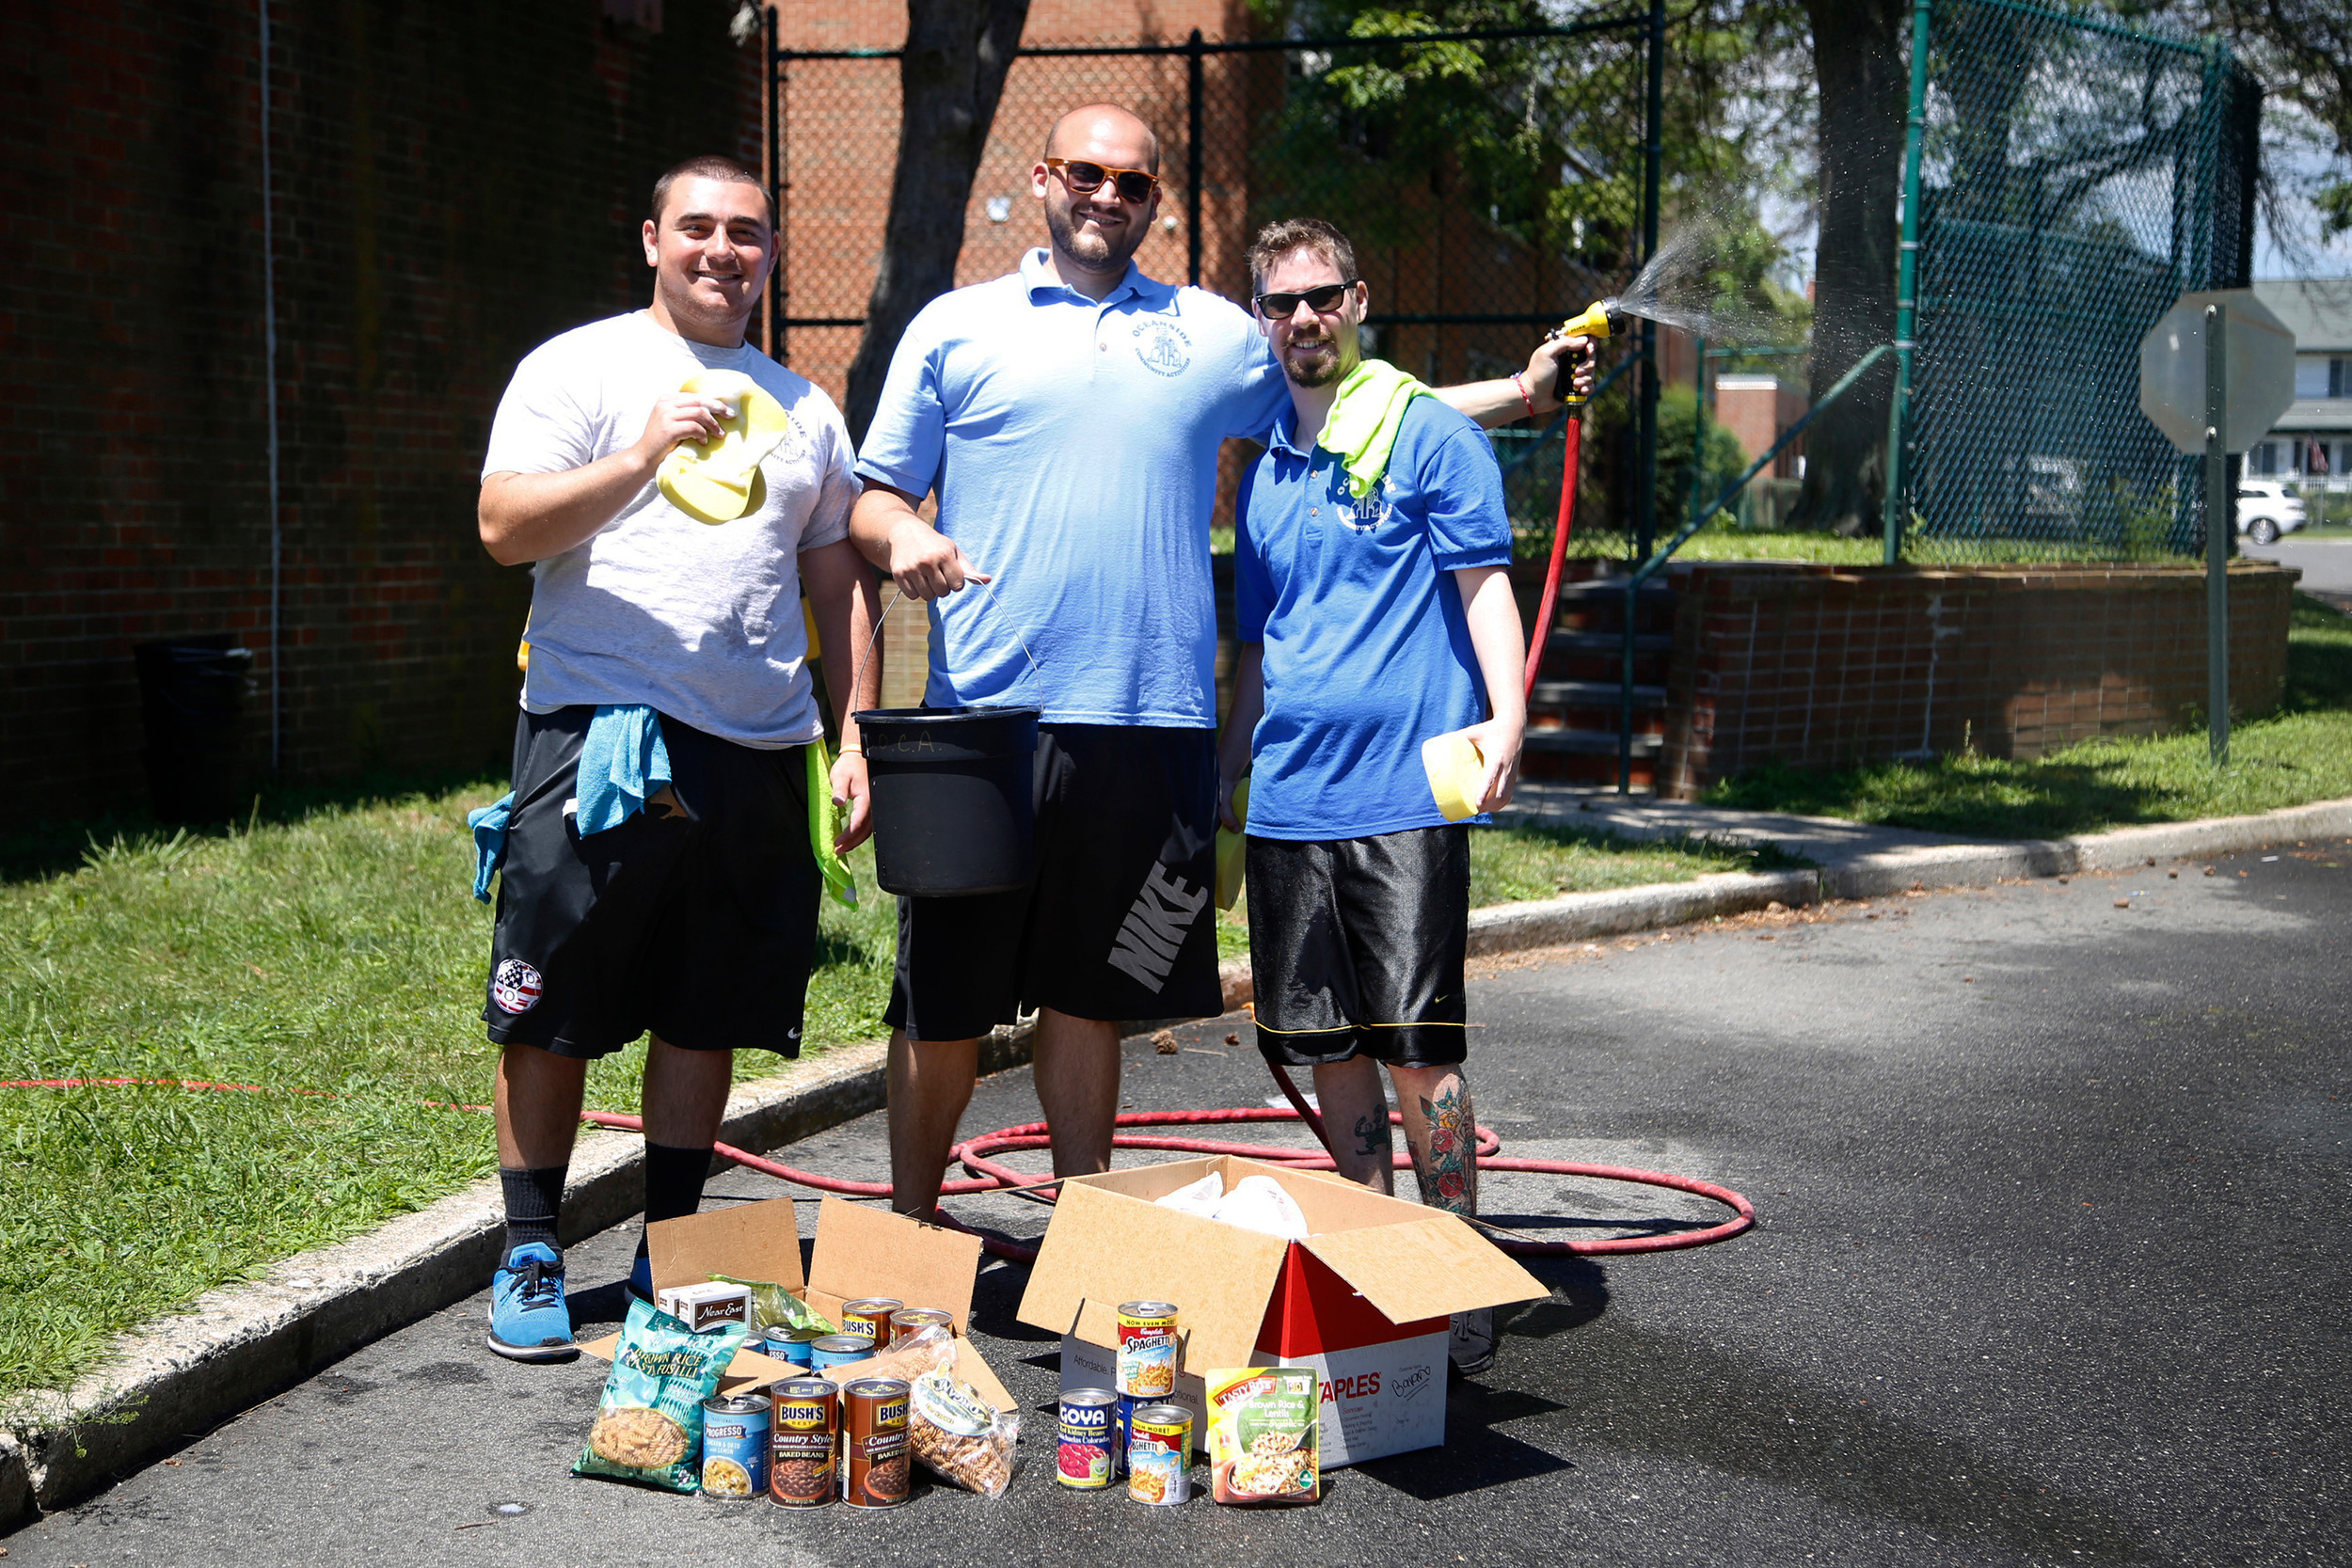 Coordinators Mike Kindin, left, Ryan Pearsall and Ryan Finn with some of the food donations they helped collect for the Oceanside Community Service food pantry at School No. 2's car wash on July 27.